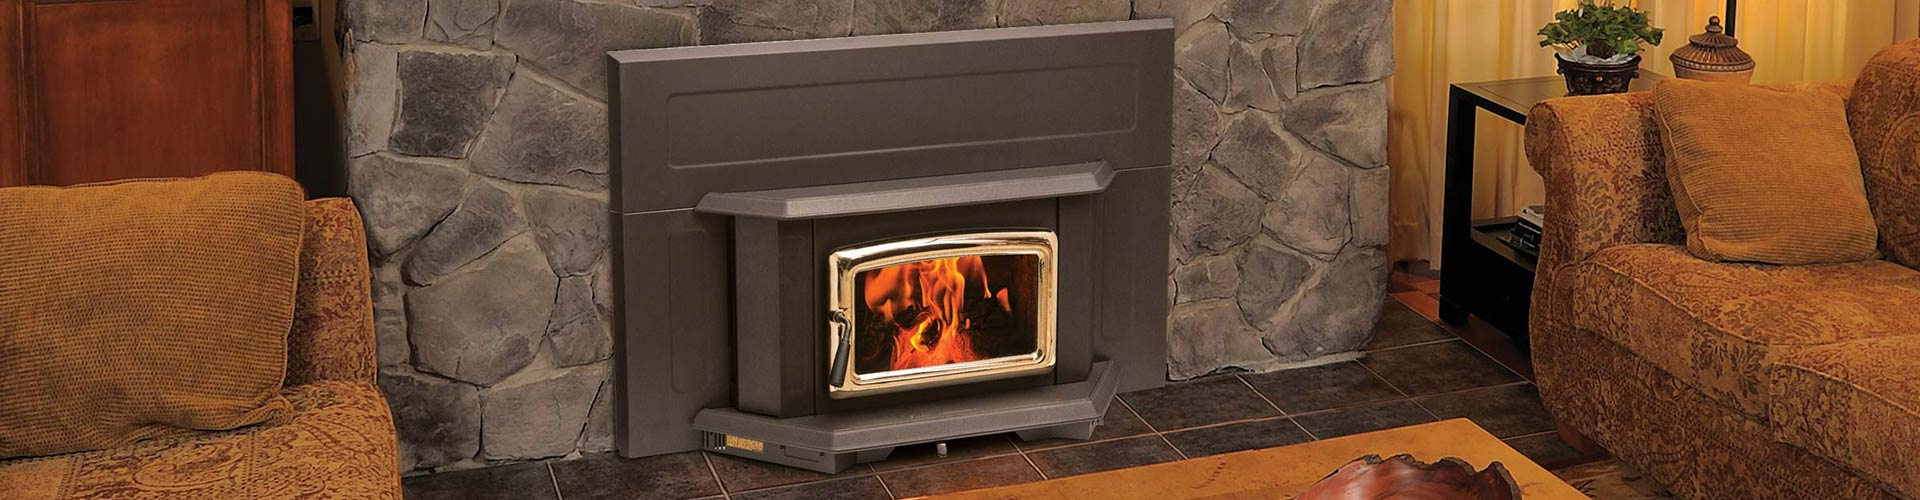 montgomery brown insert fireplace wood fire place the inserts